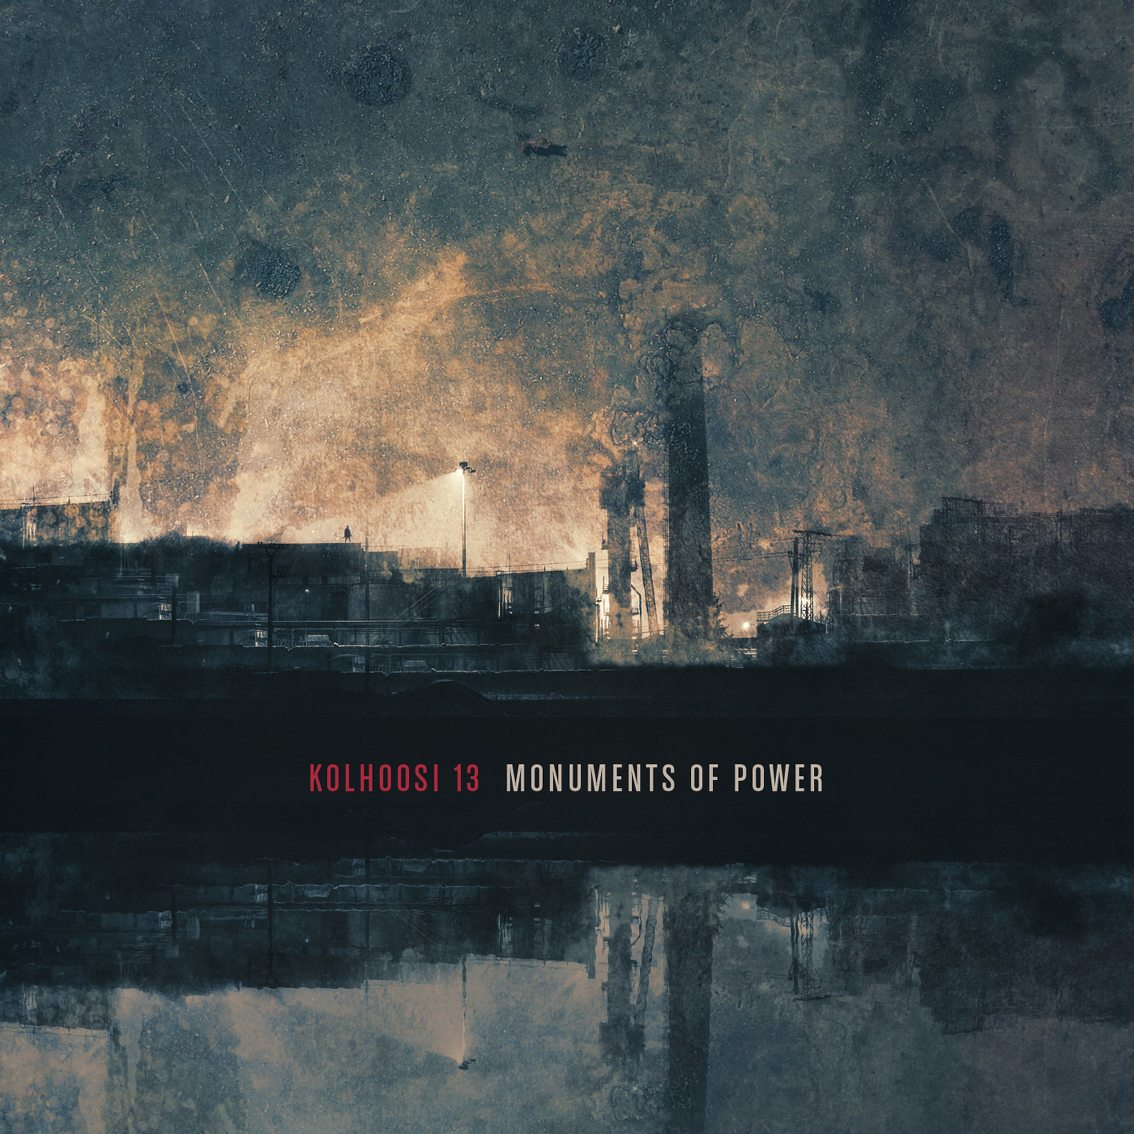 New album by the Finnish duo Kolhoosi 13, 'Monuments of Power', available now for pre-order at Cryo Chamber